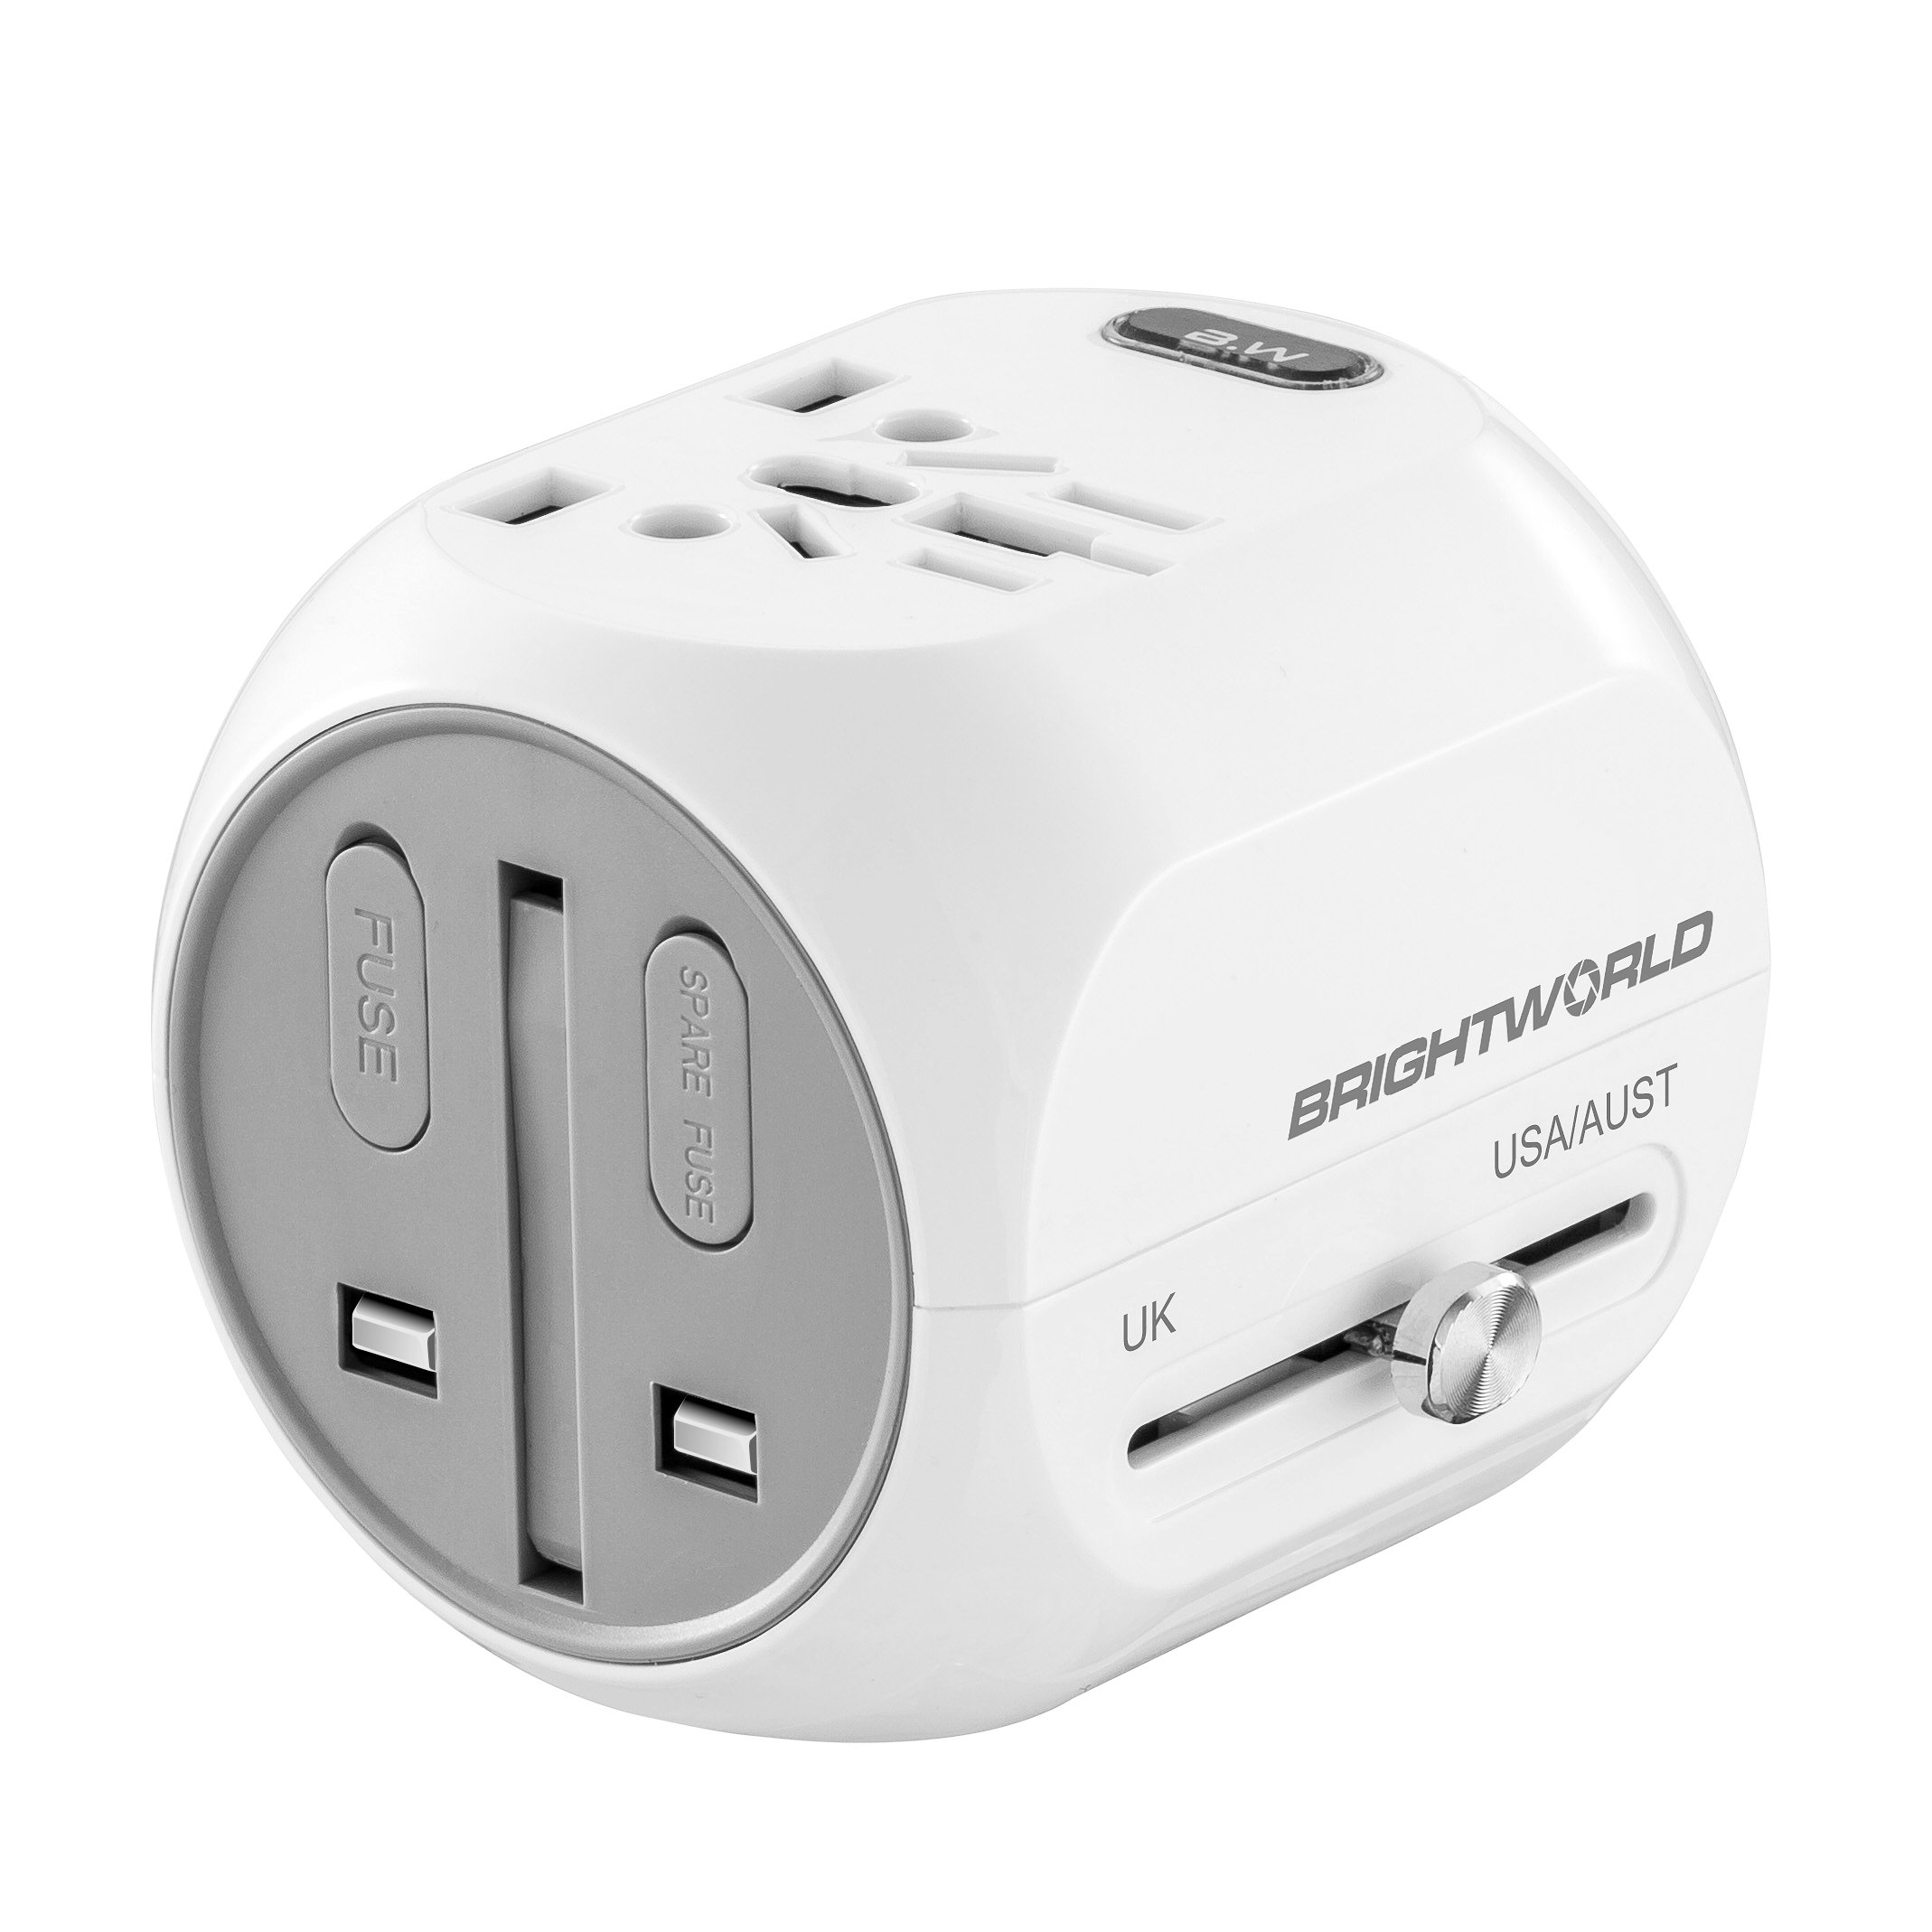 BRIGHTWORLD Travel Adapter, Worldwide All in One Universal Travel Adapter Kit and Power Plug Converter with USB and Type C Charging Port for Cell Phone Laptop Camera in USA UK Europe White